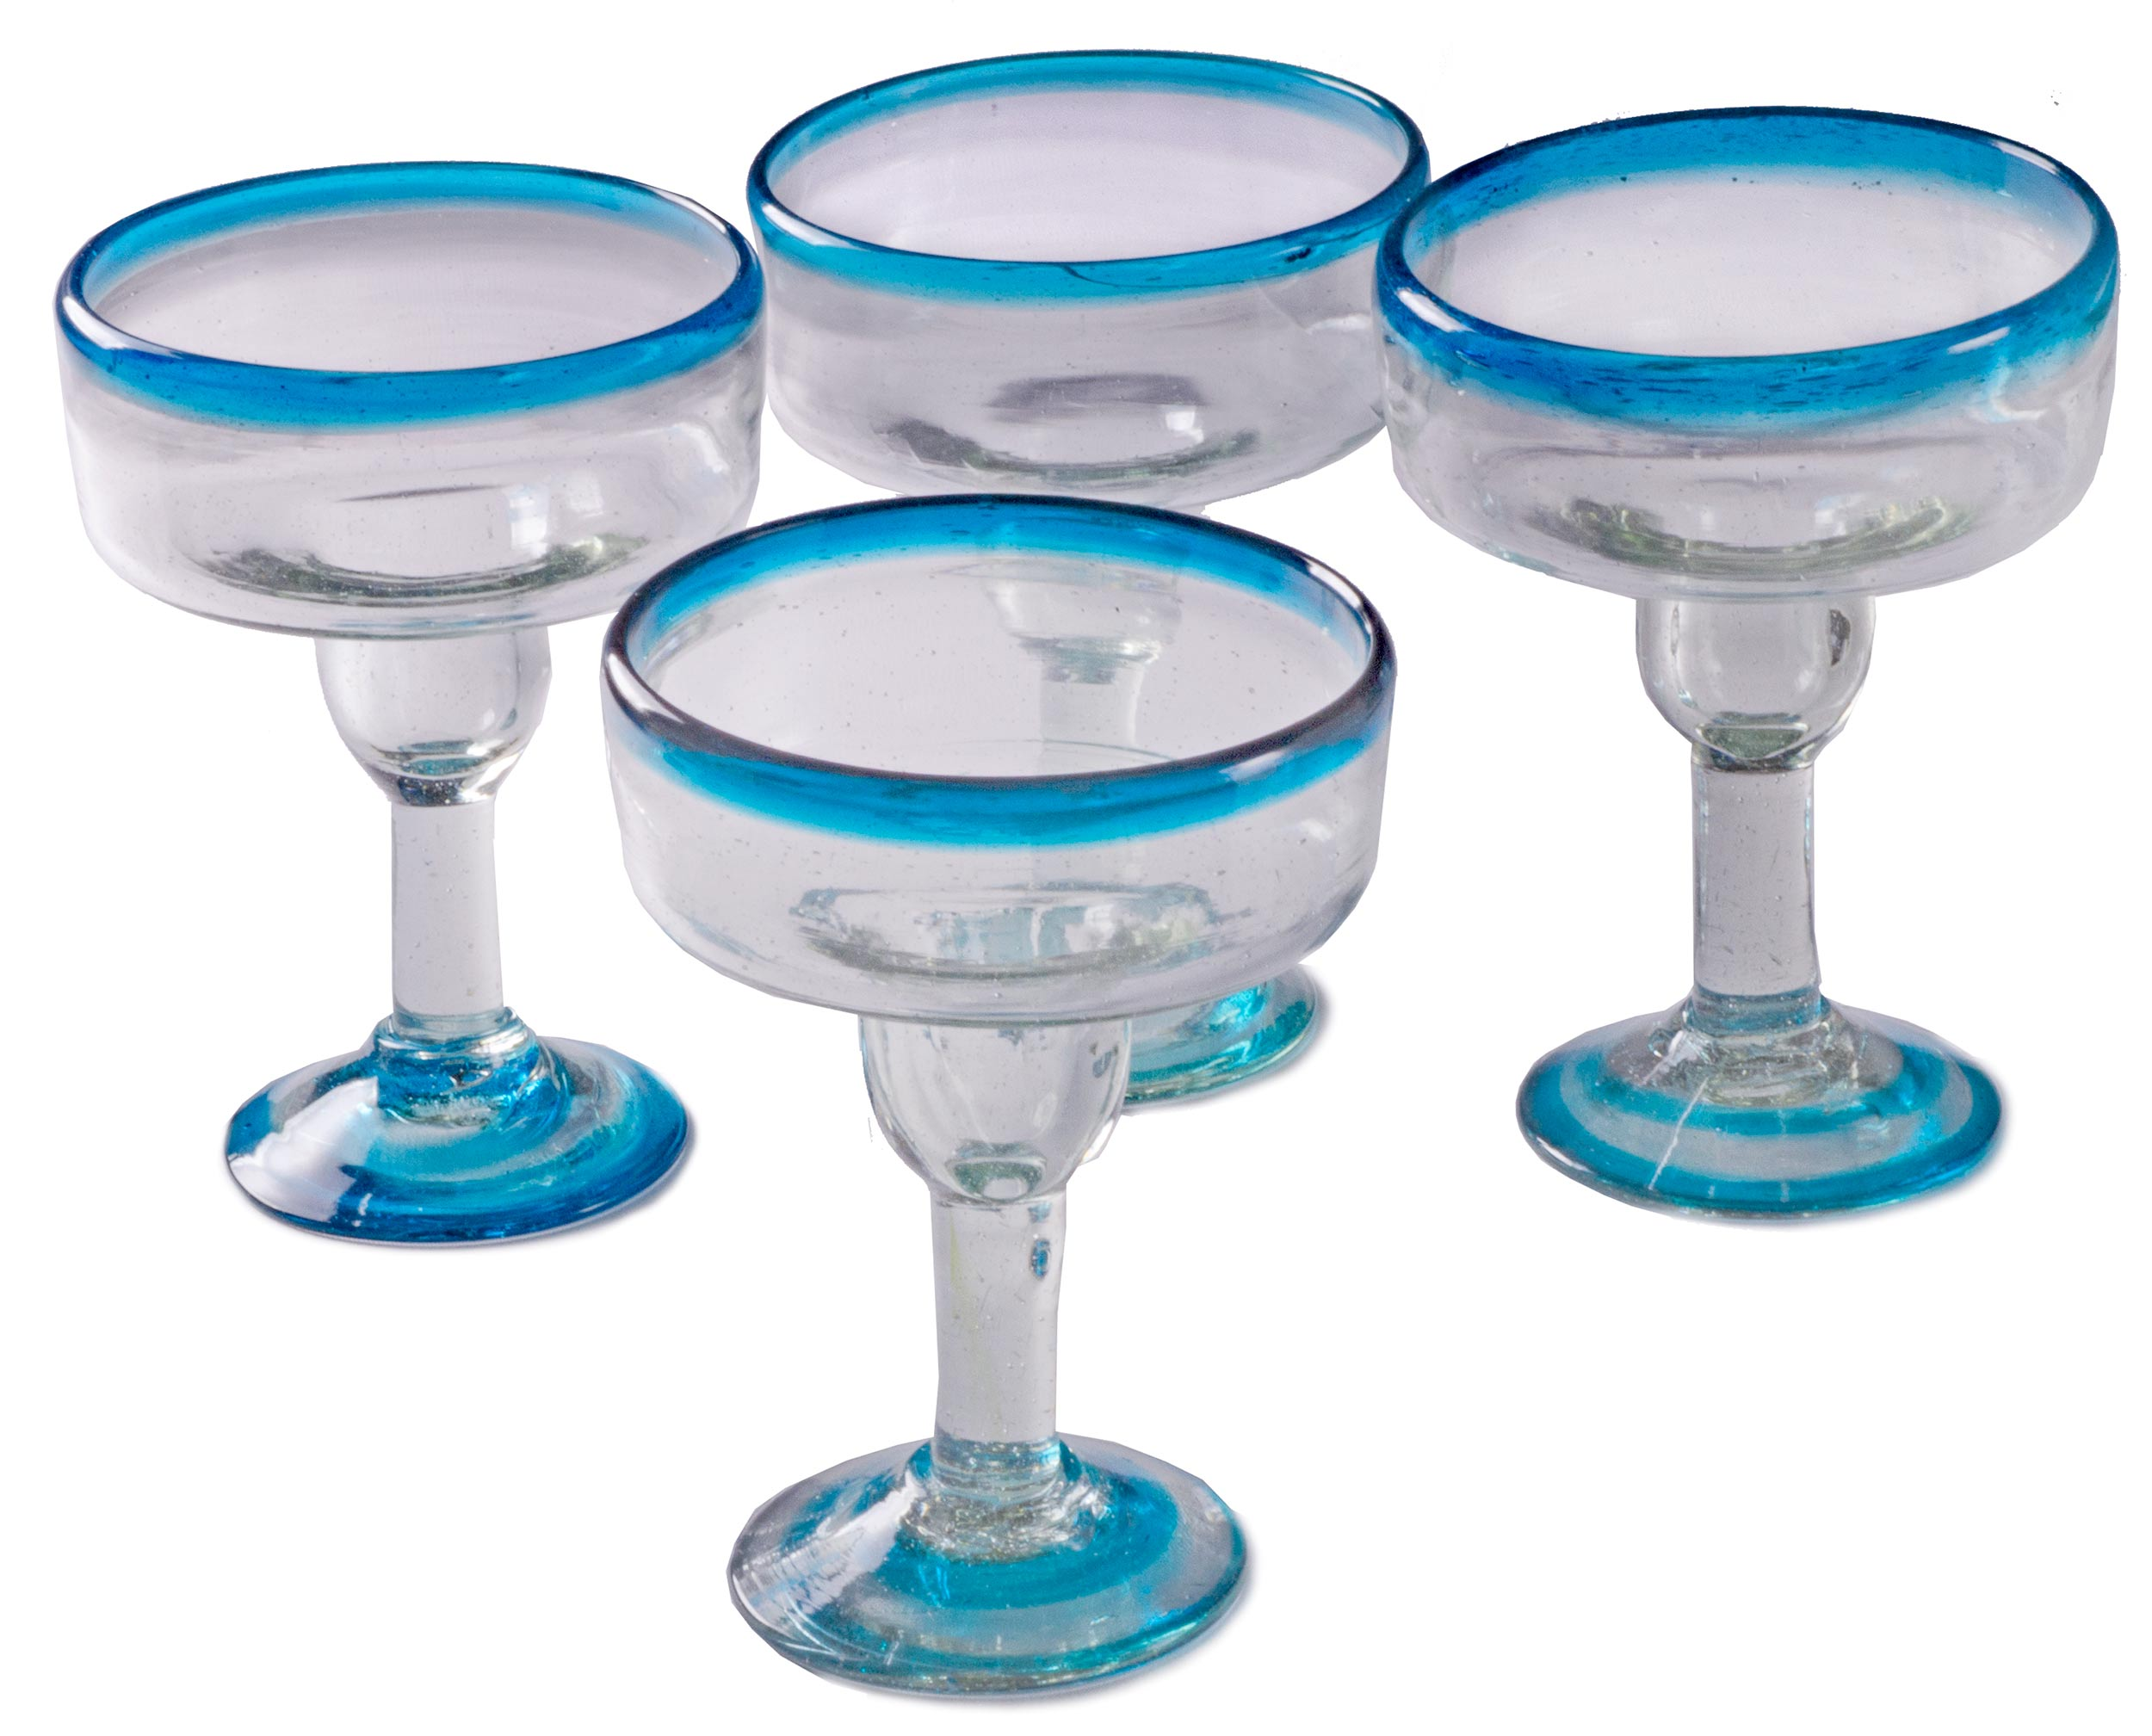 Orion Turquoise Rim 12 oz Margarita Coupette - Set of 4 - Orion's Table Mexican Glassware